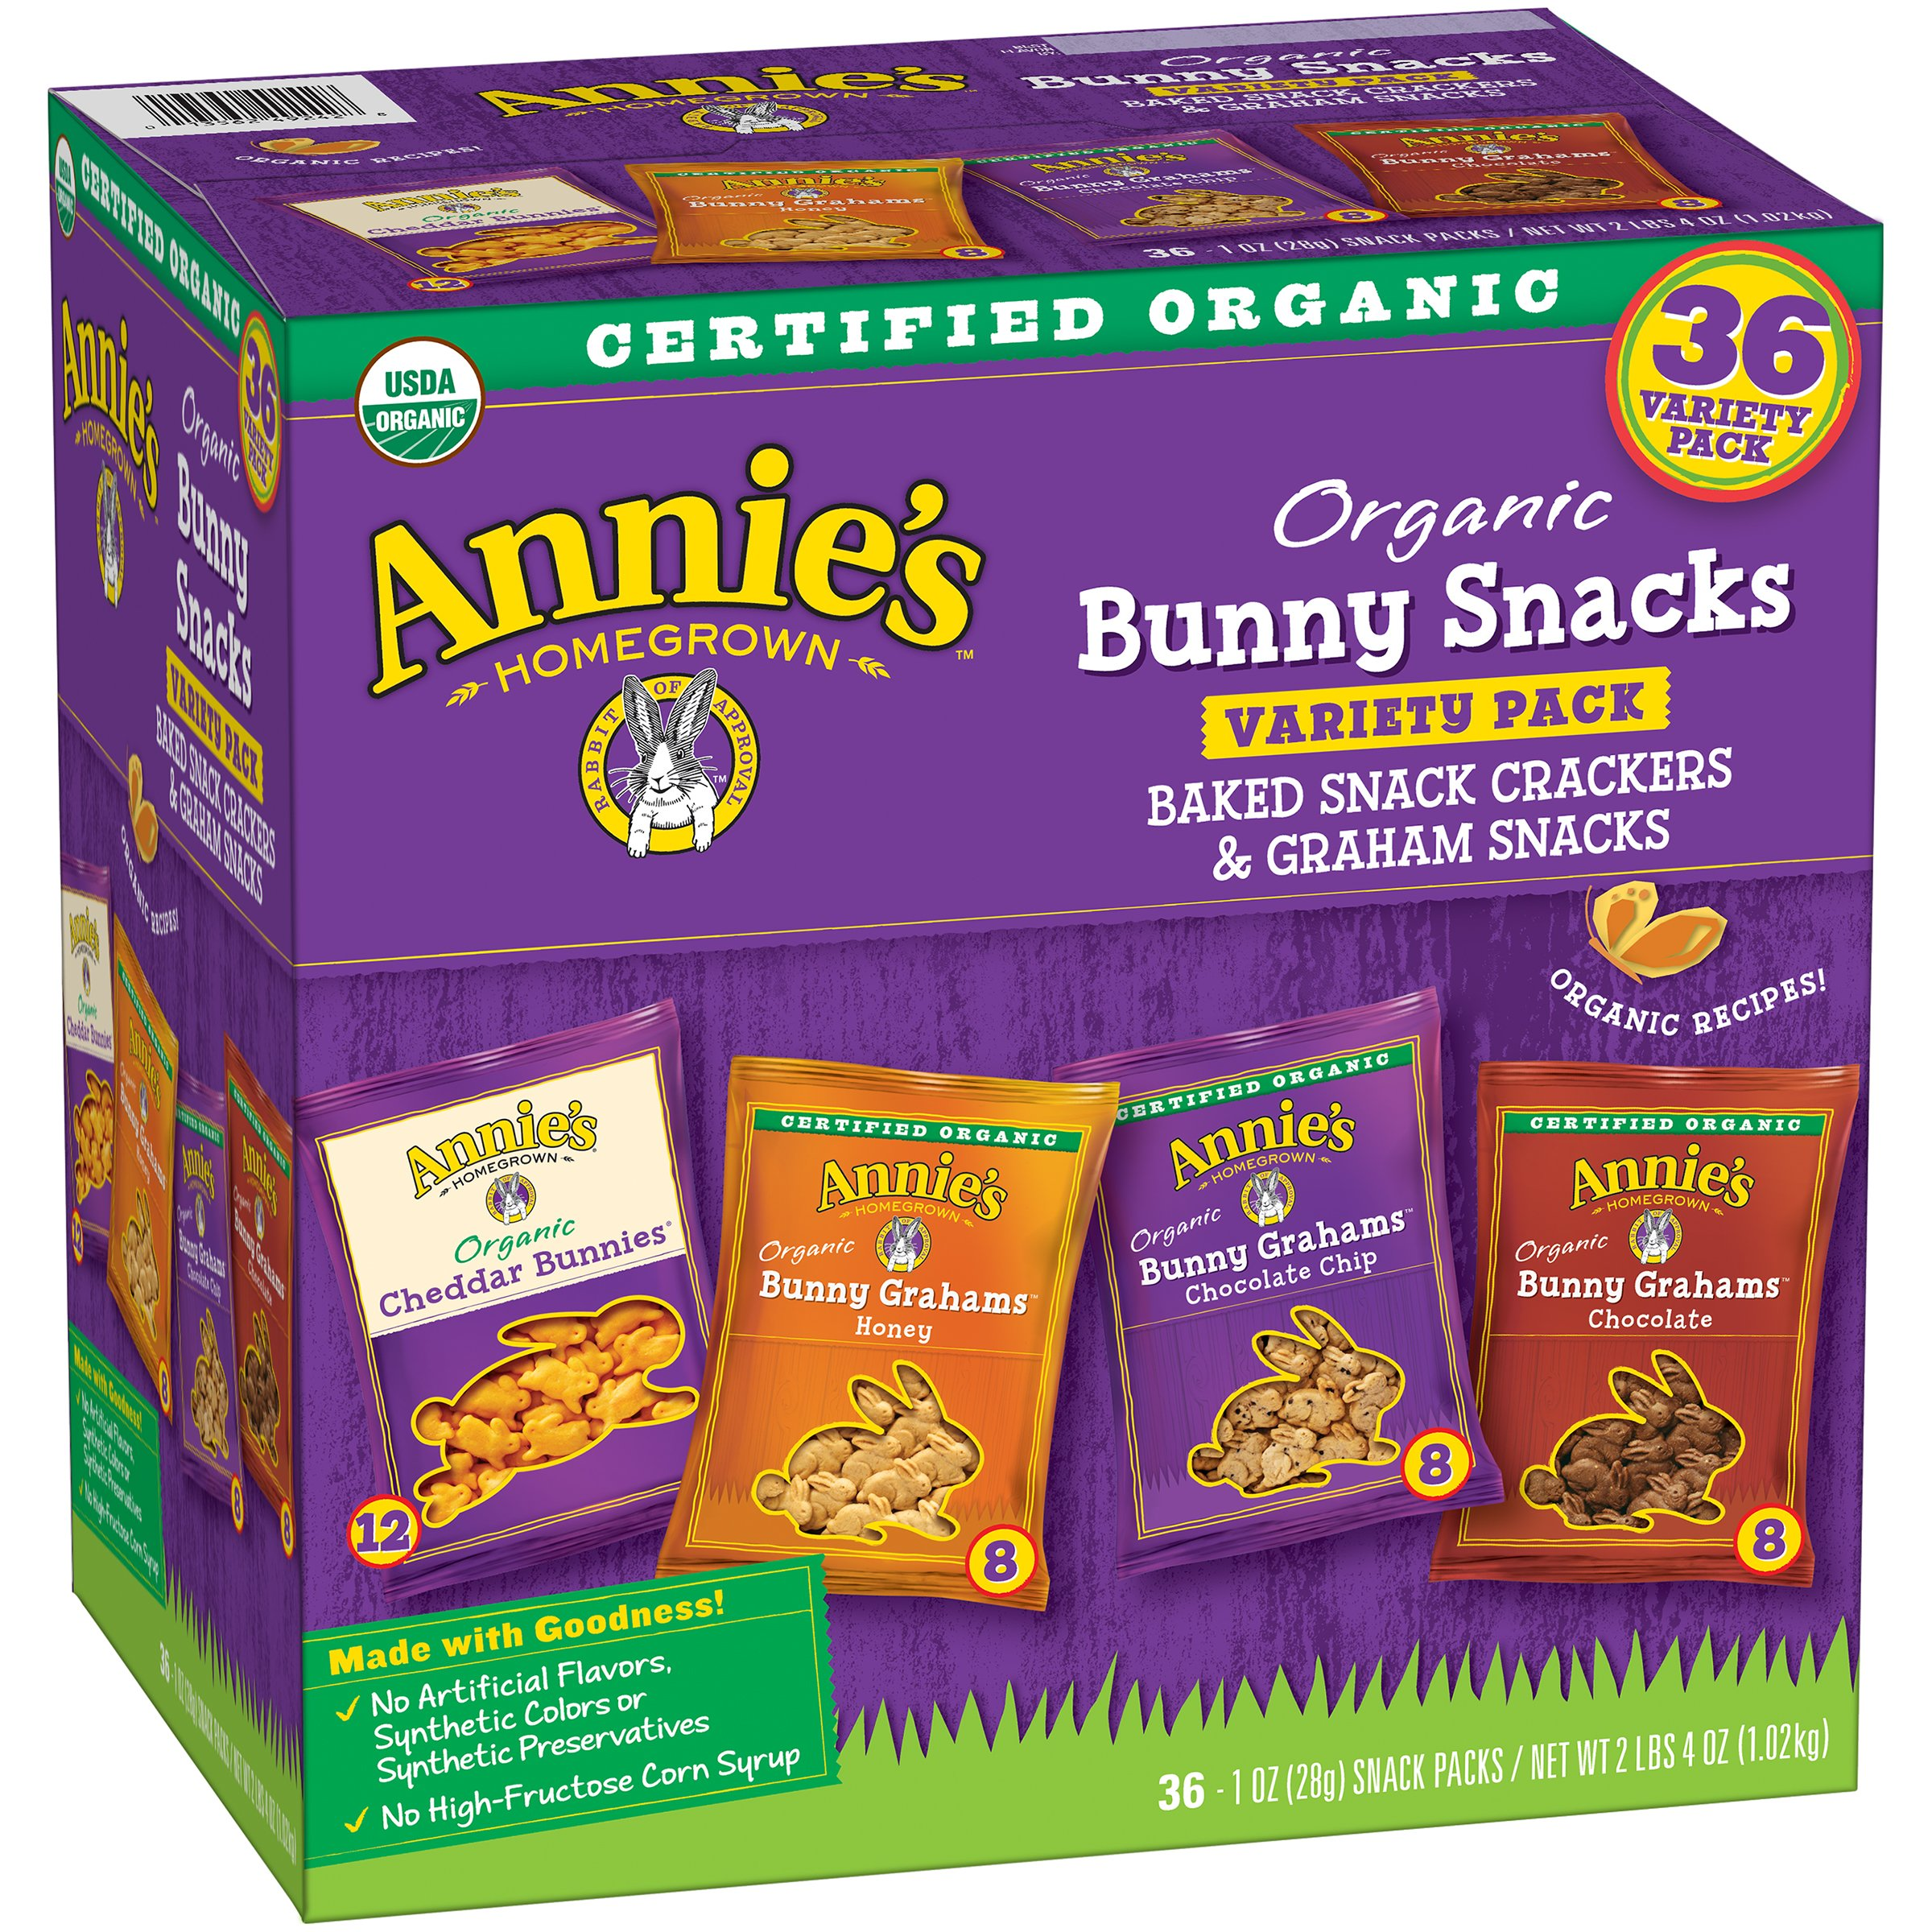 Organic Bunny Variety Pack